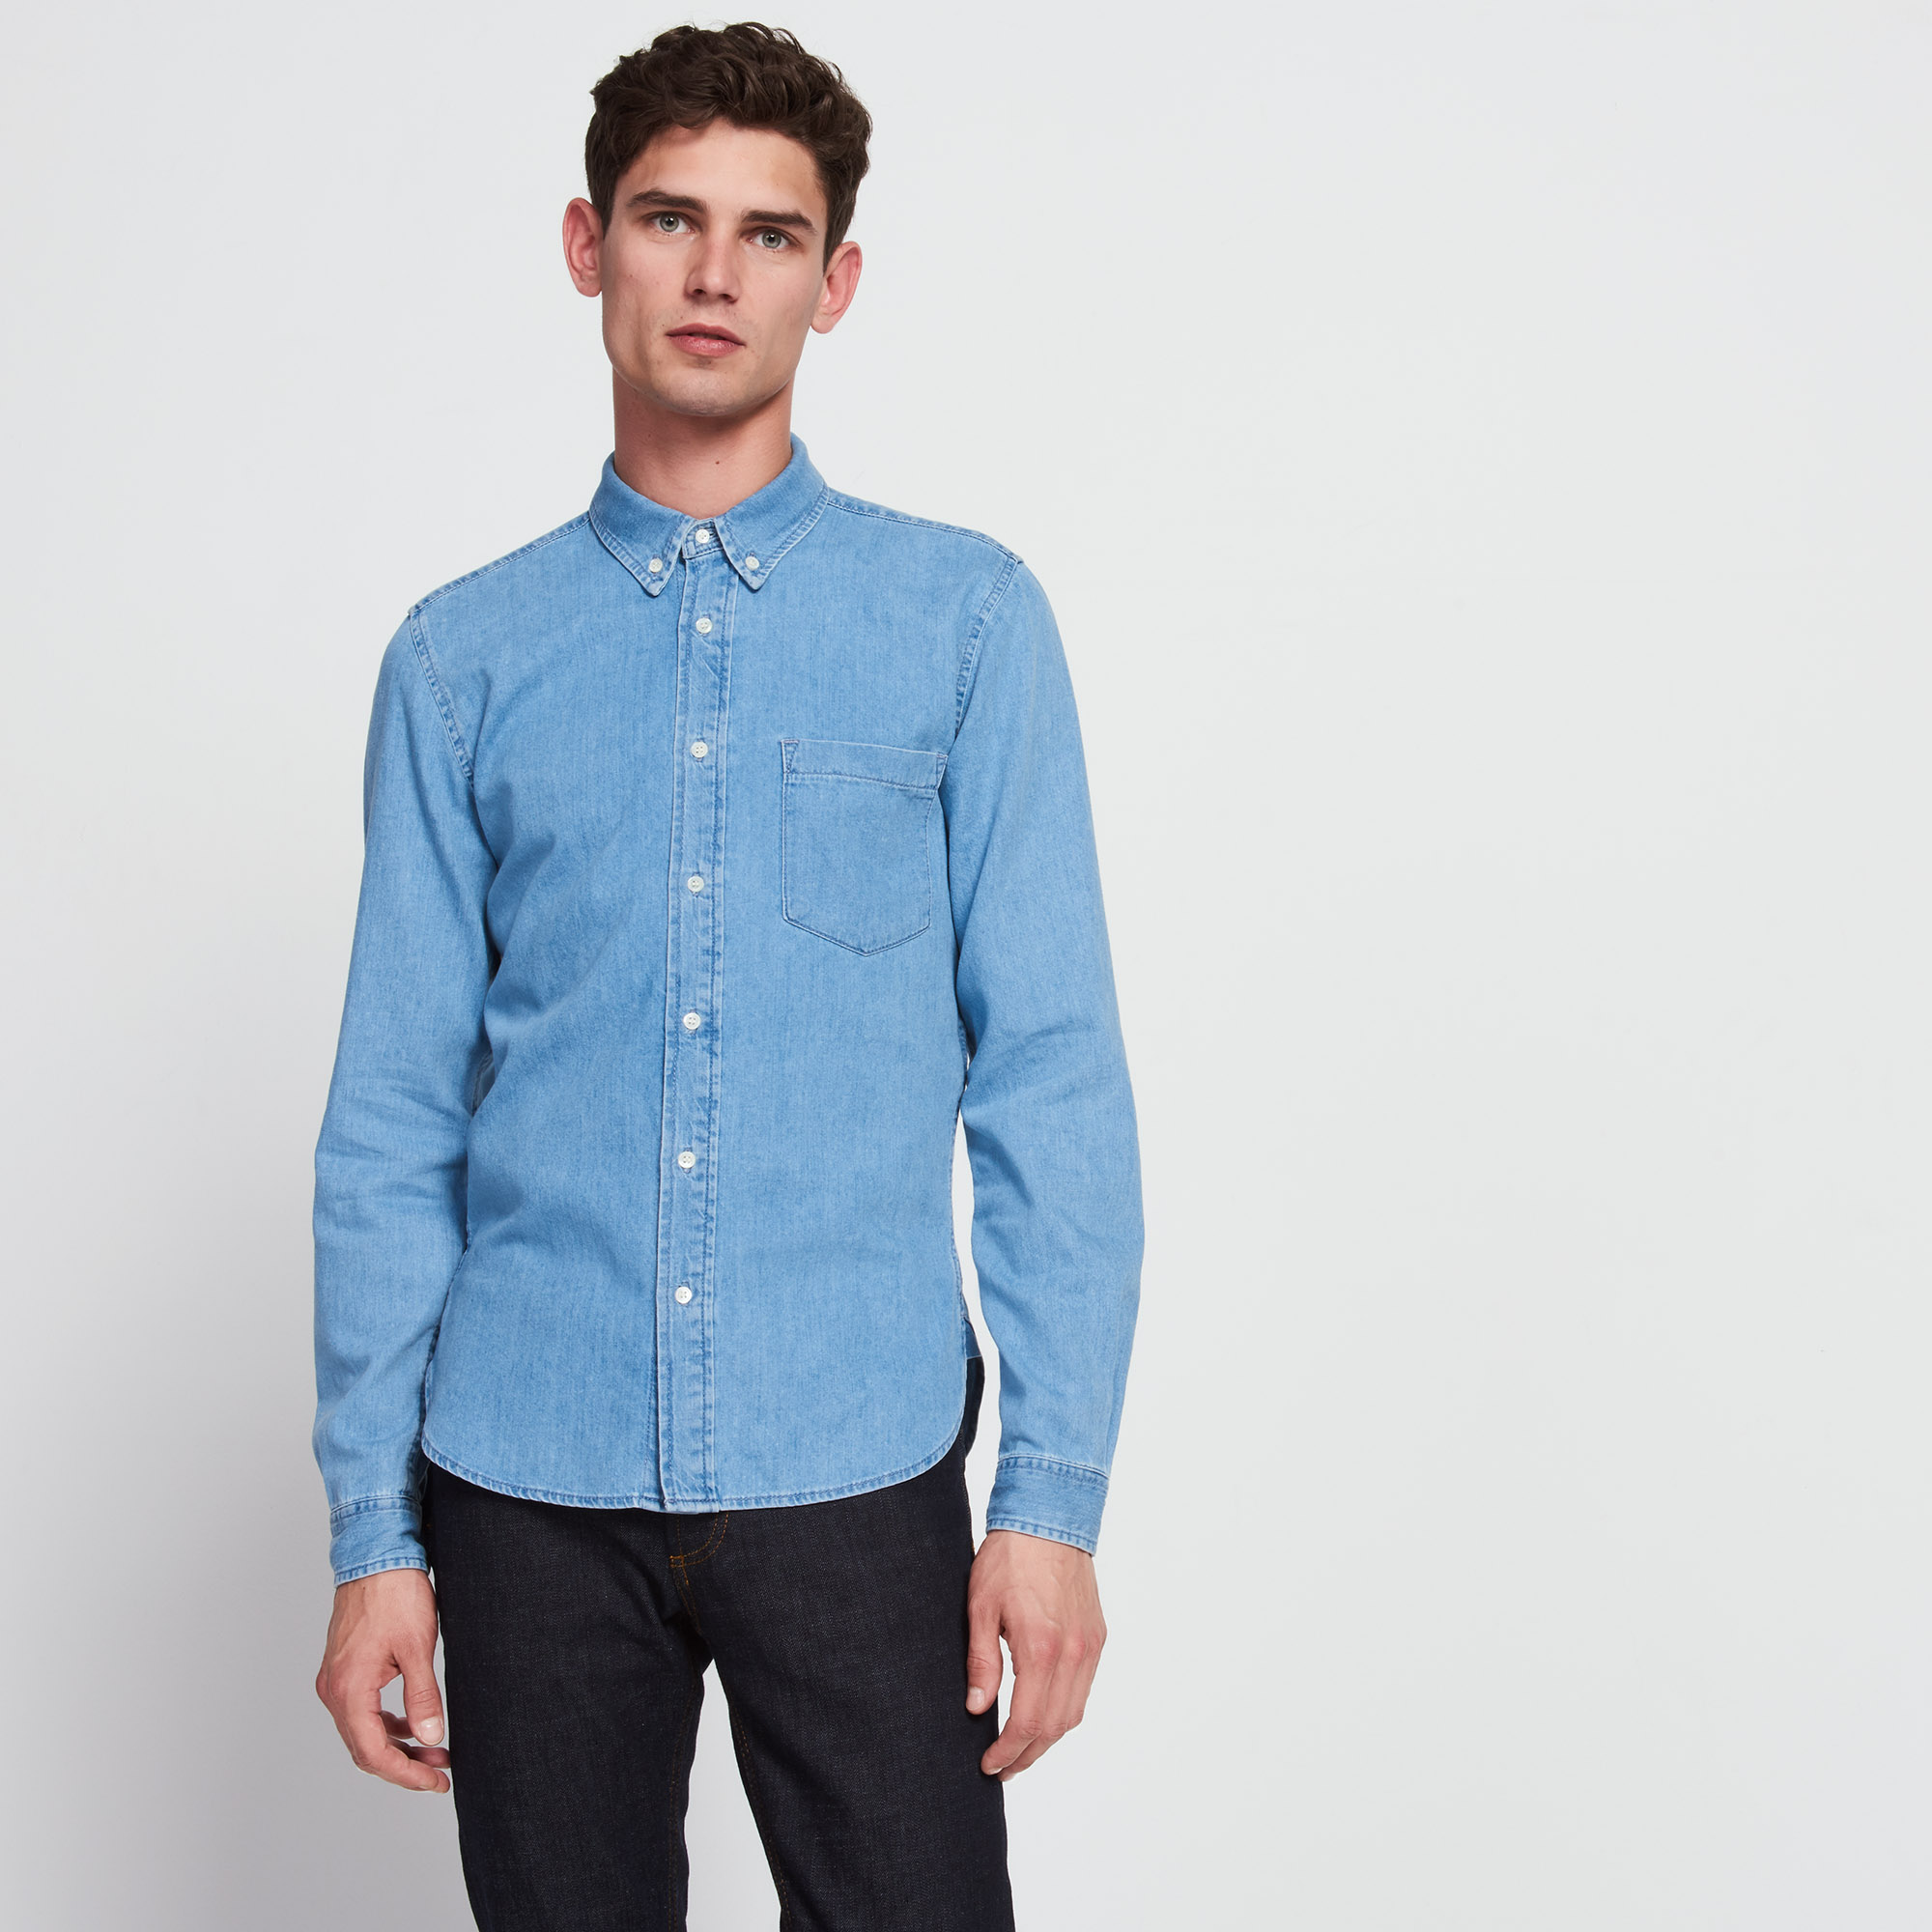 Denim shirts for men are actually one of the most popular clothing items when it comes to Spring and Summer. They come in all sorts of variations, ranging from thick and raw denim to lighter weight chambray and cotton, all in various washes.